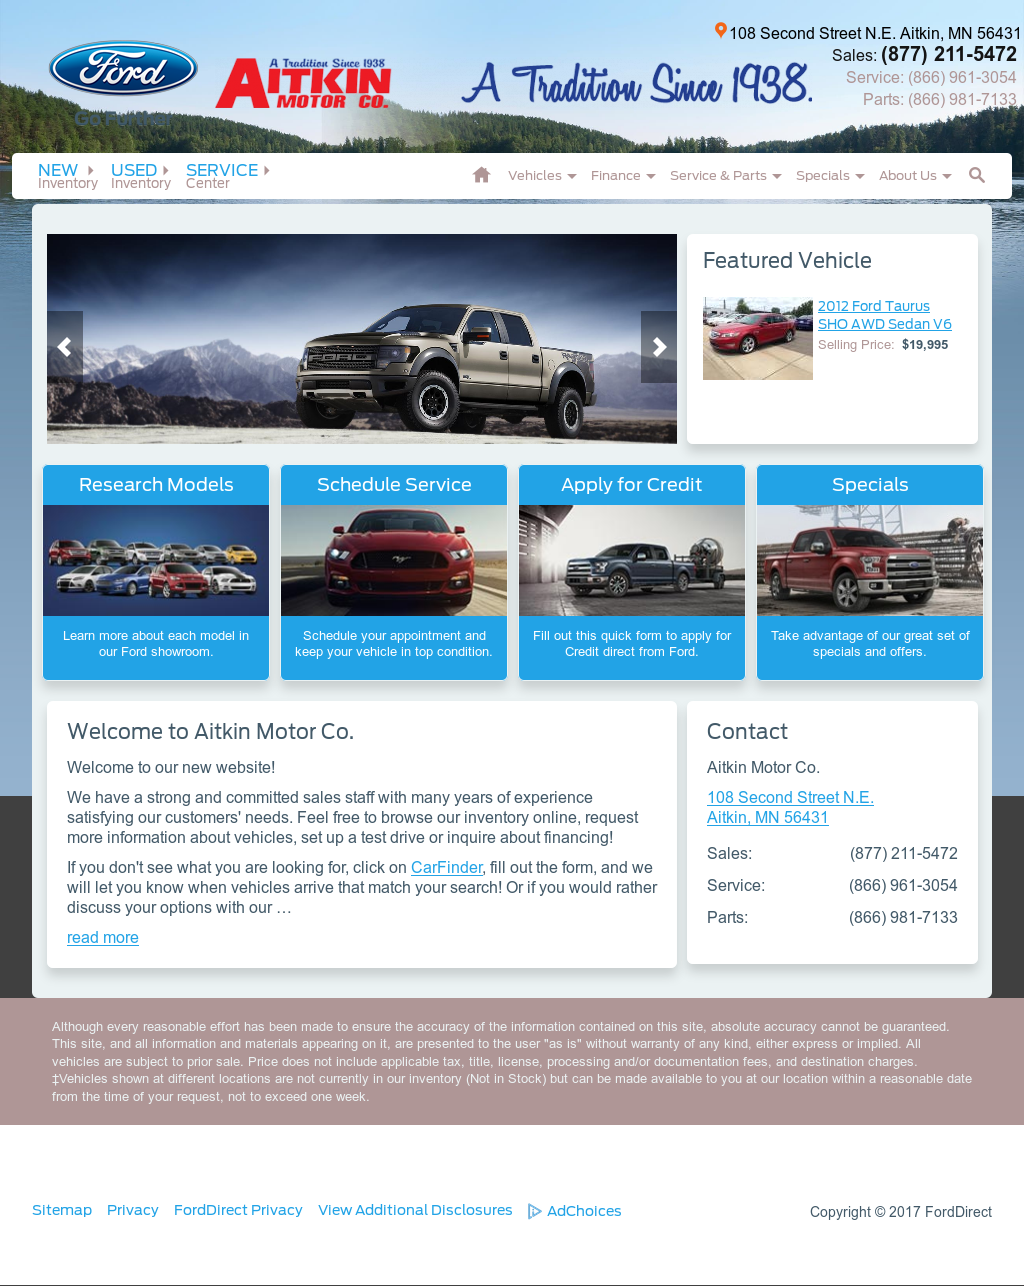 Aitkin Motor Co website history